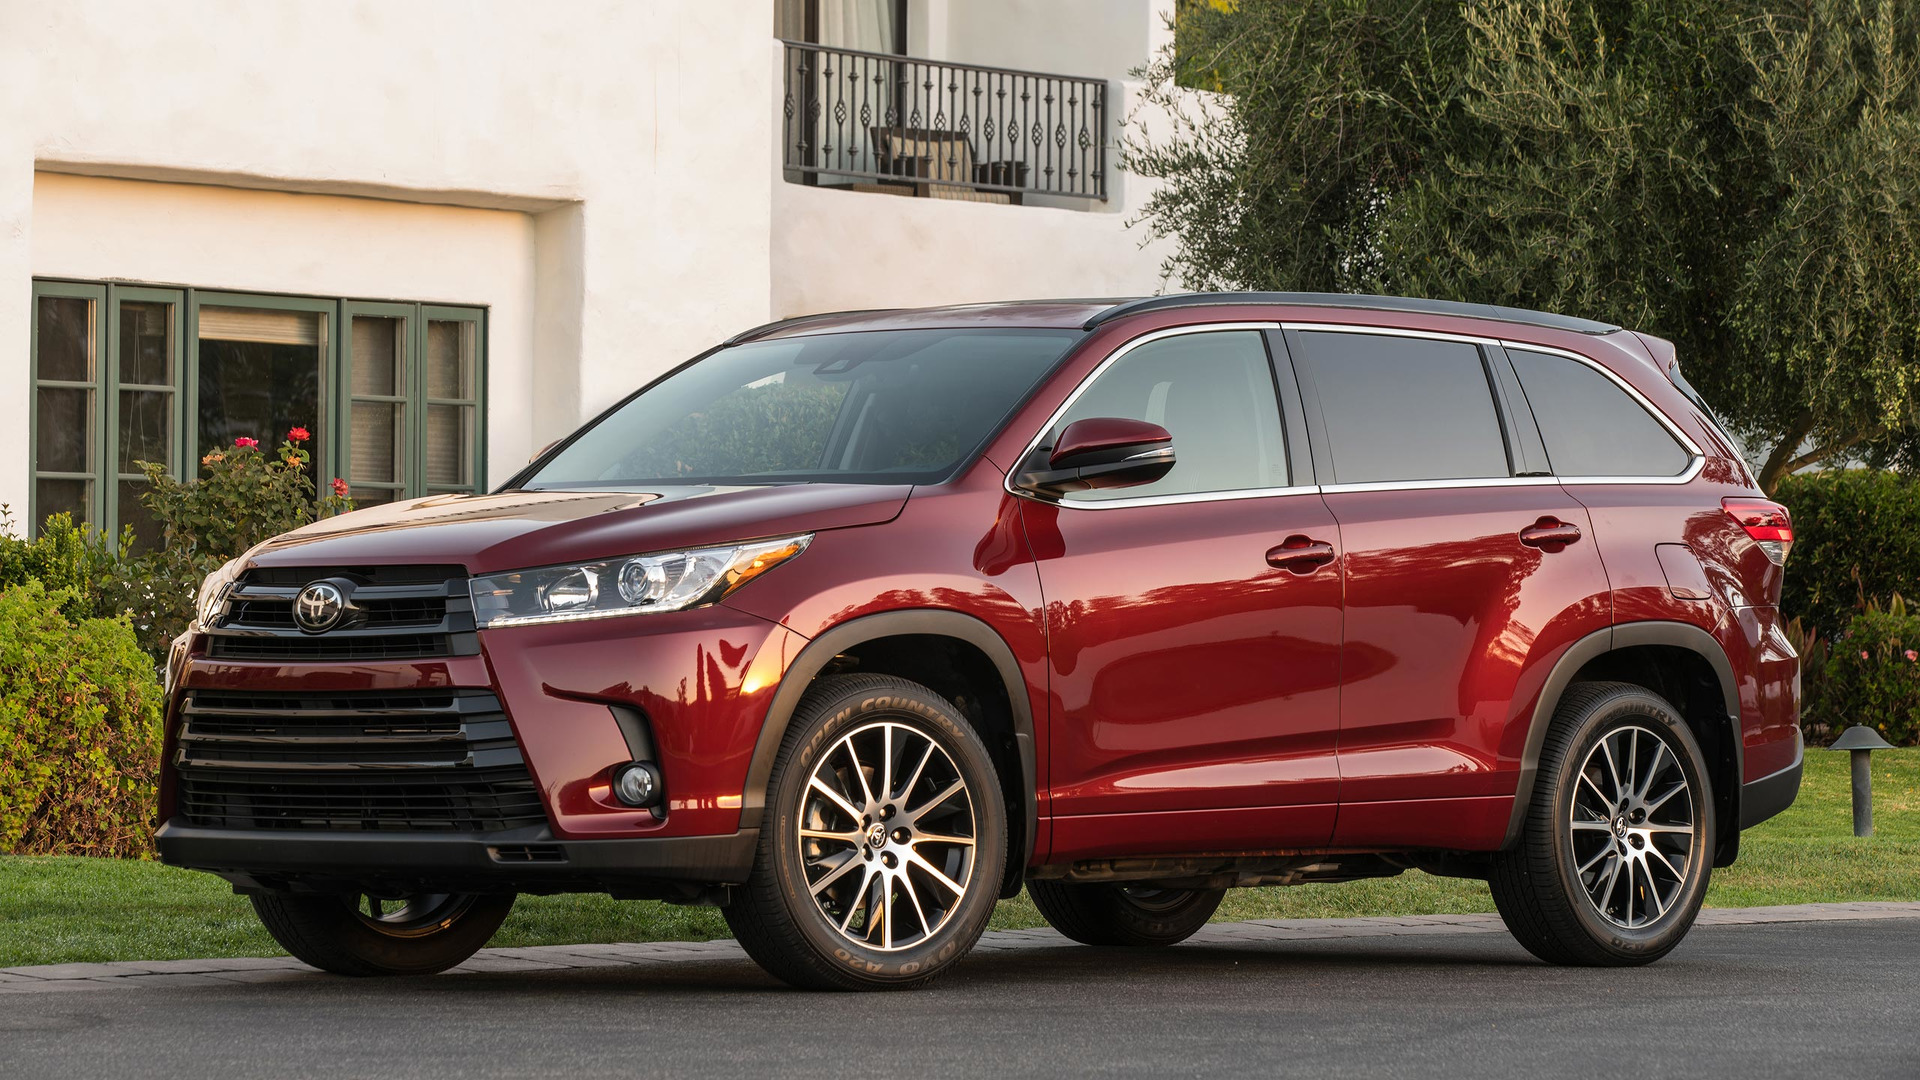 2017 Toyota Highlander Hybrid Gets Price Drop Updates Throughout Lineup